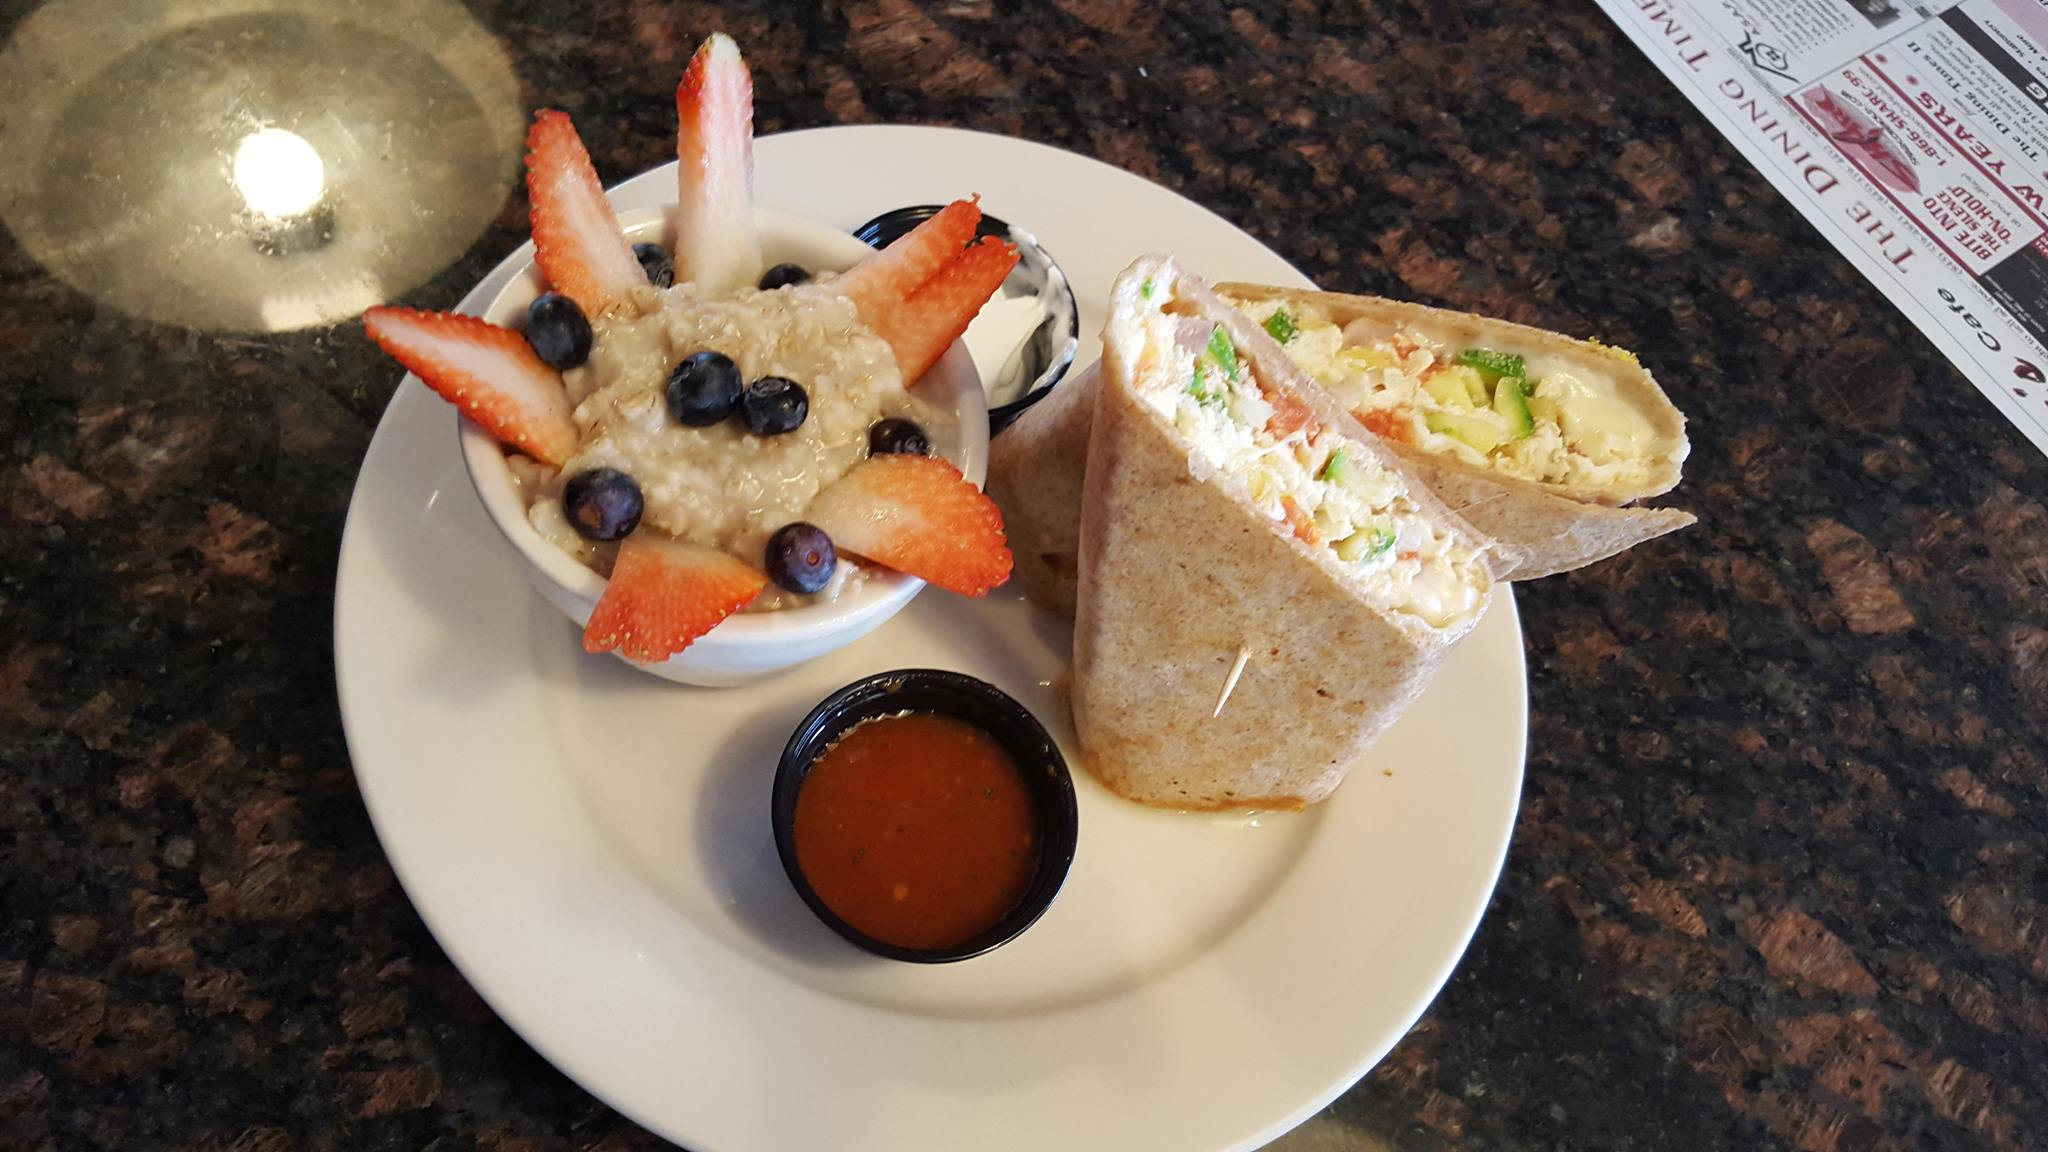 breakfast wrap with eggs and a fruit cup on the side.